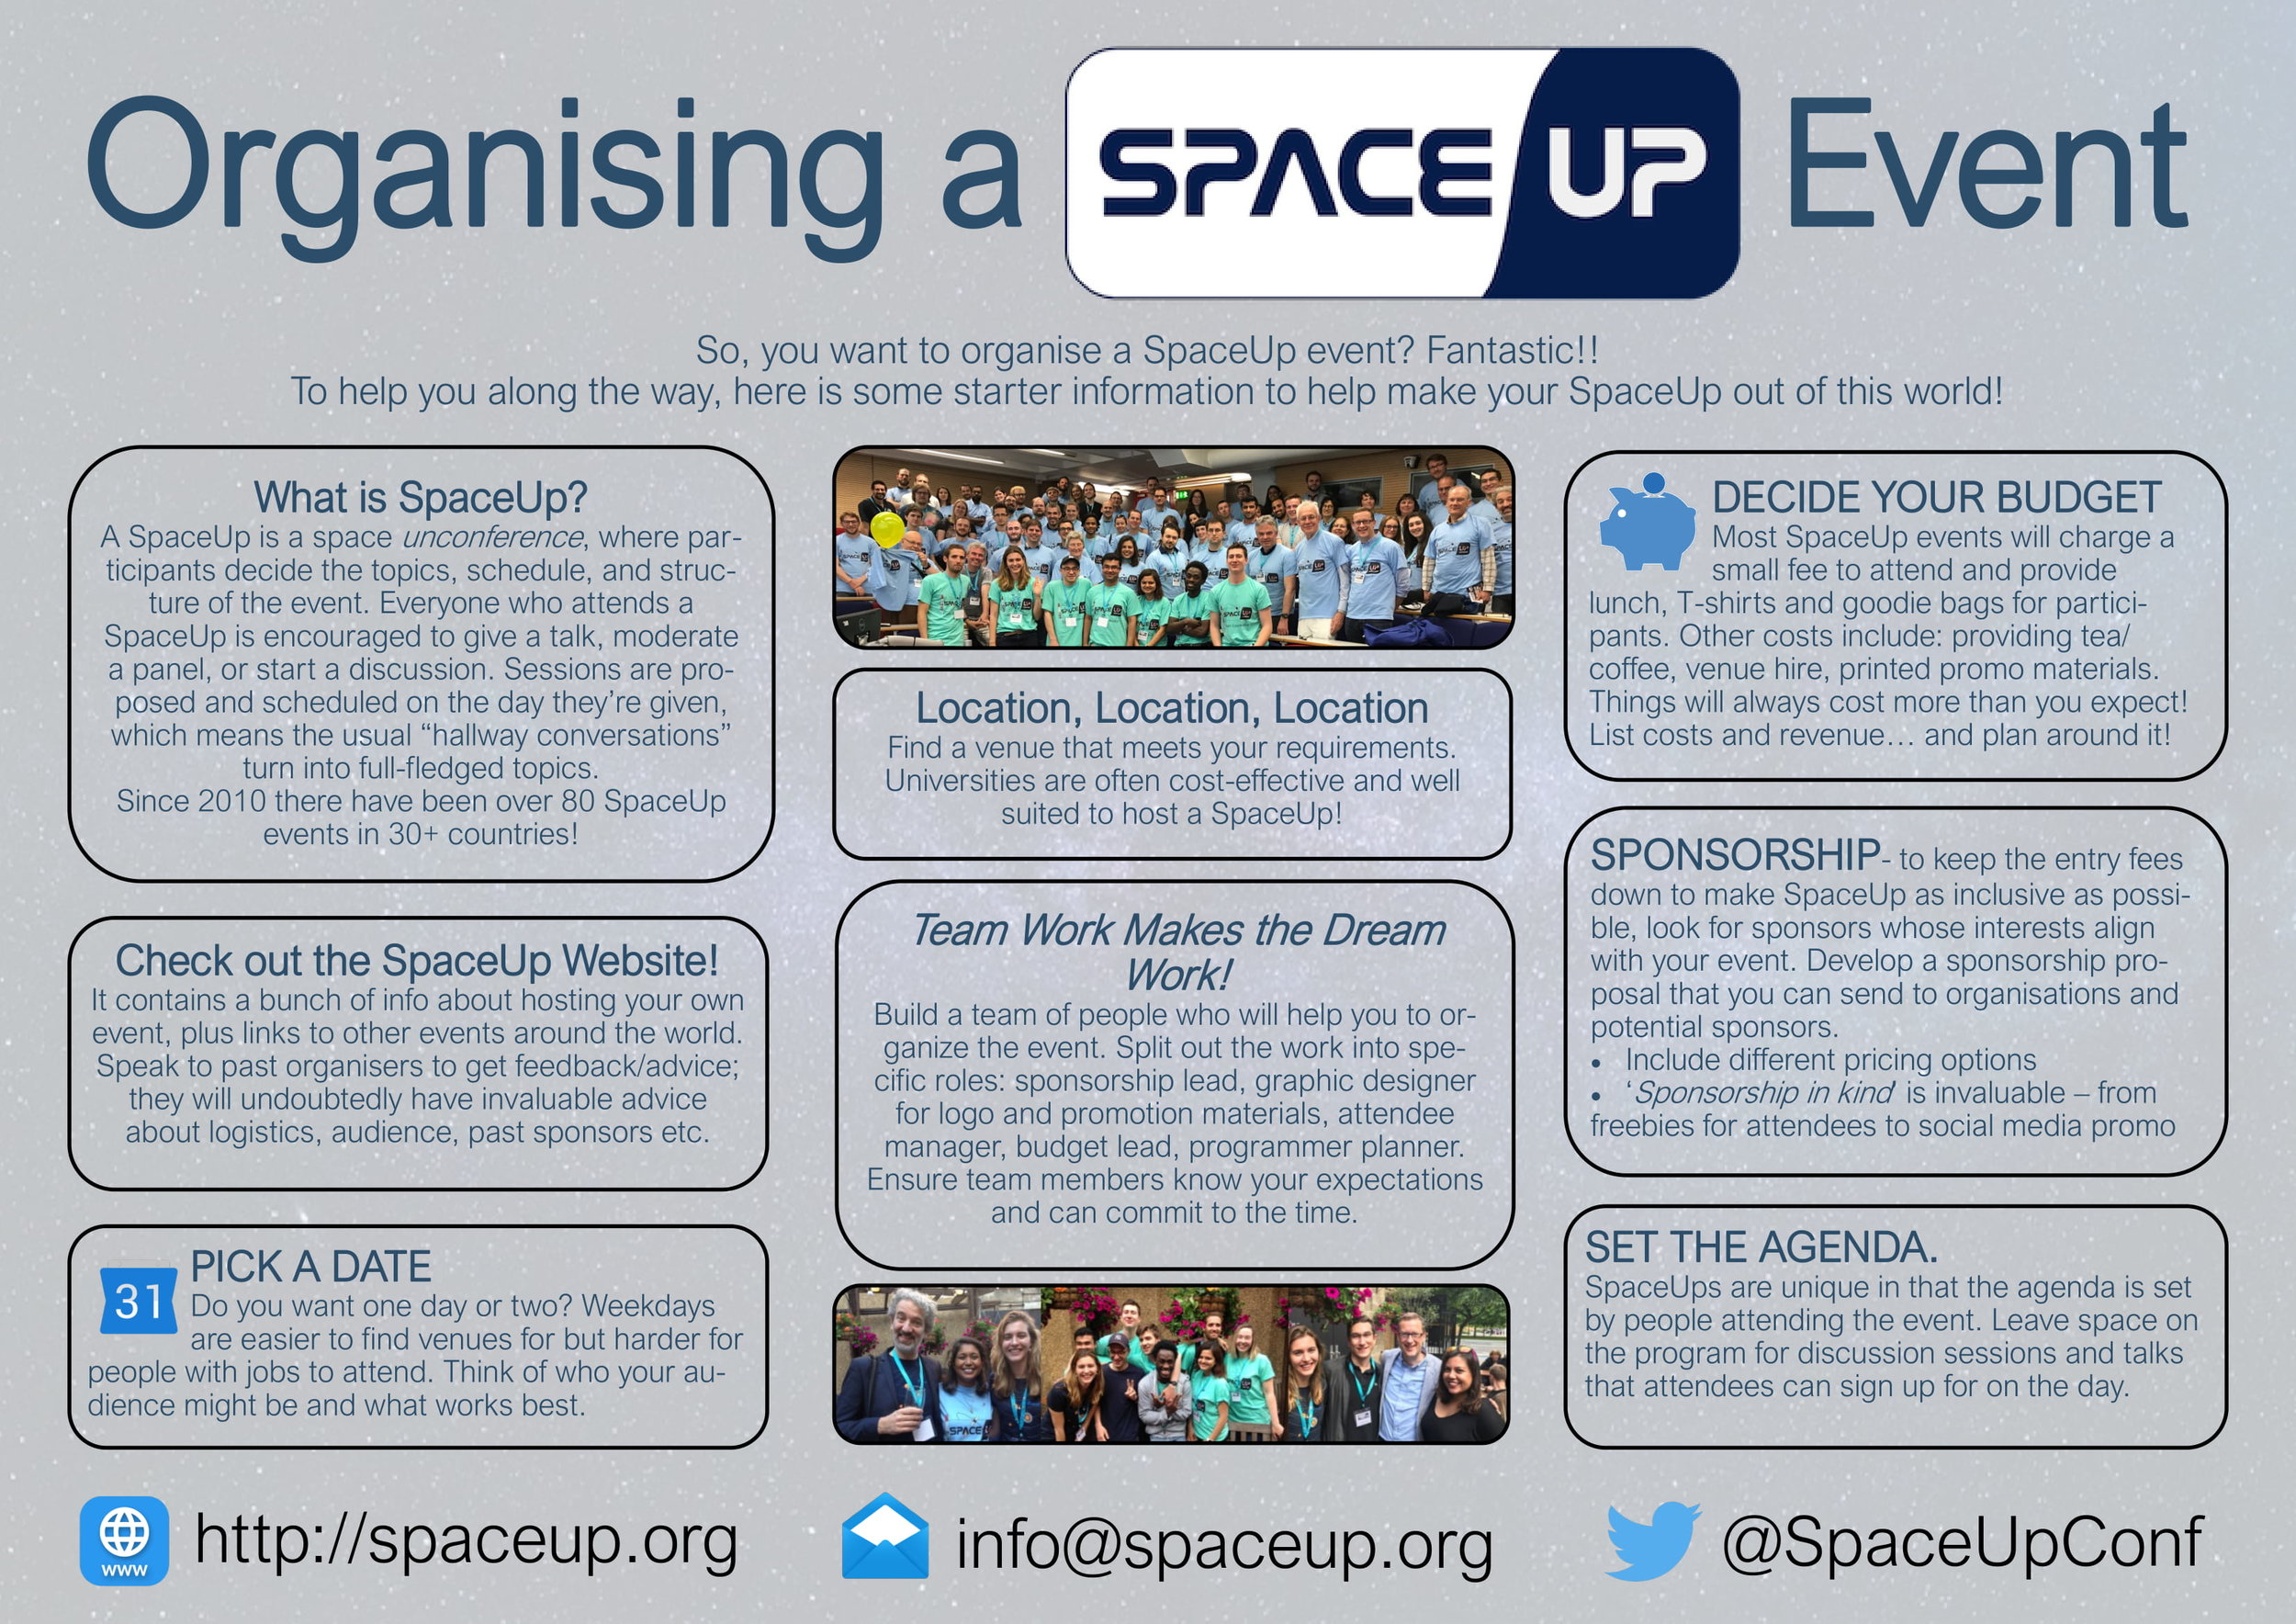 Organising A SpaceUp Event-1.jpg